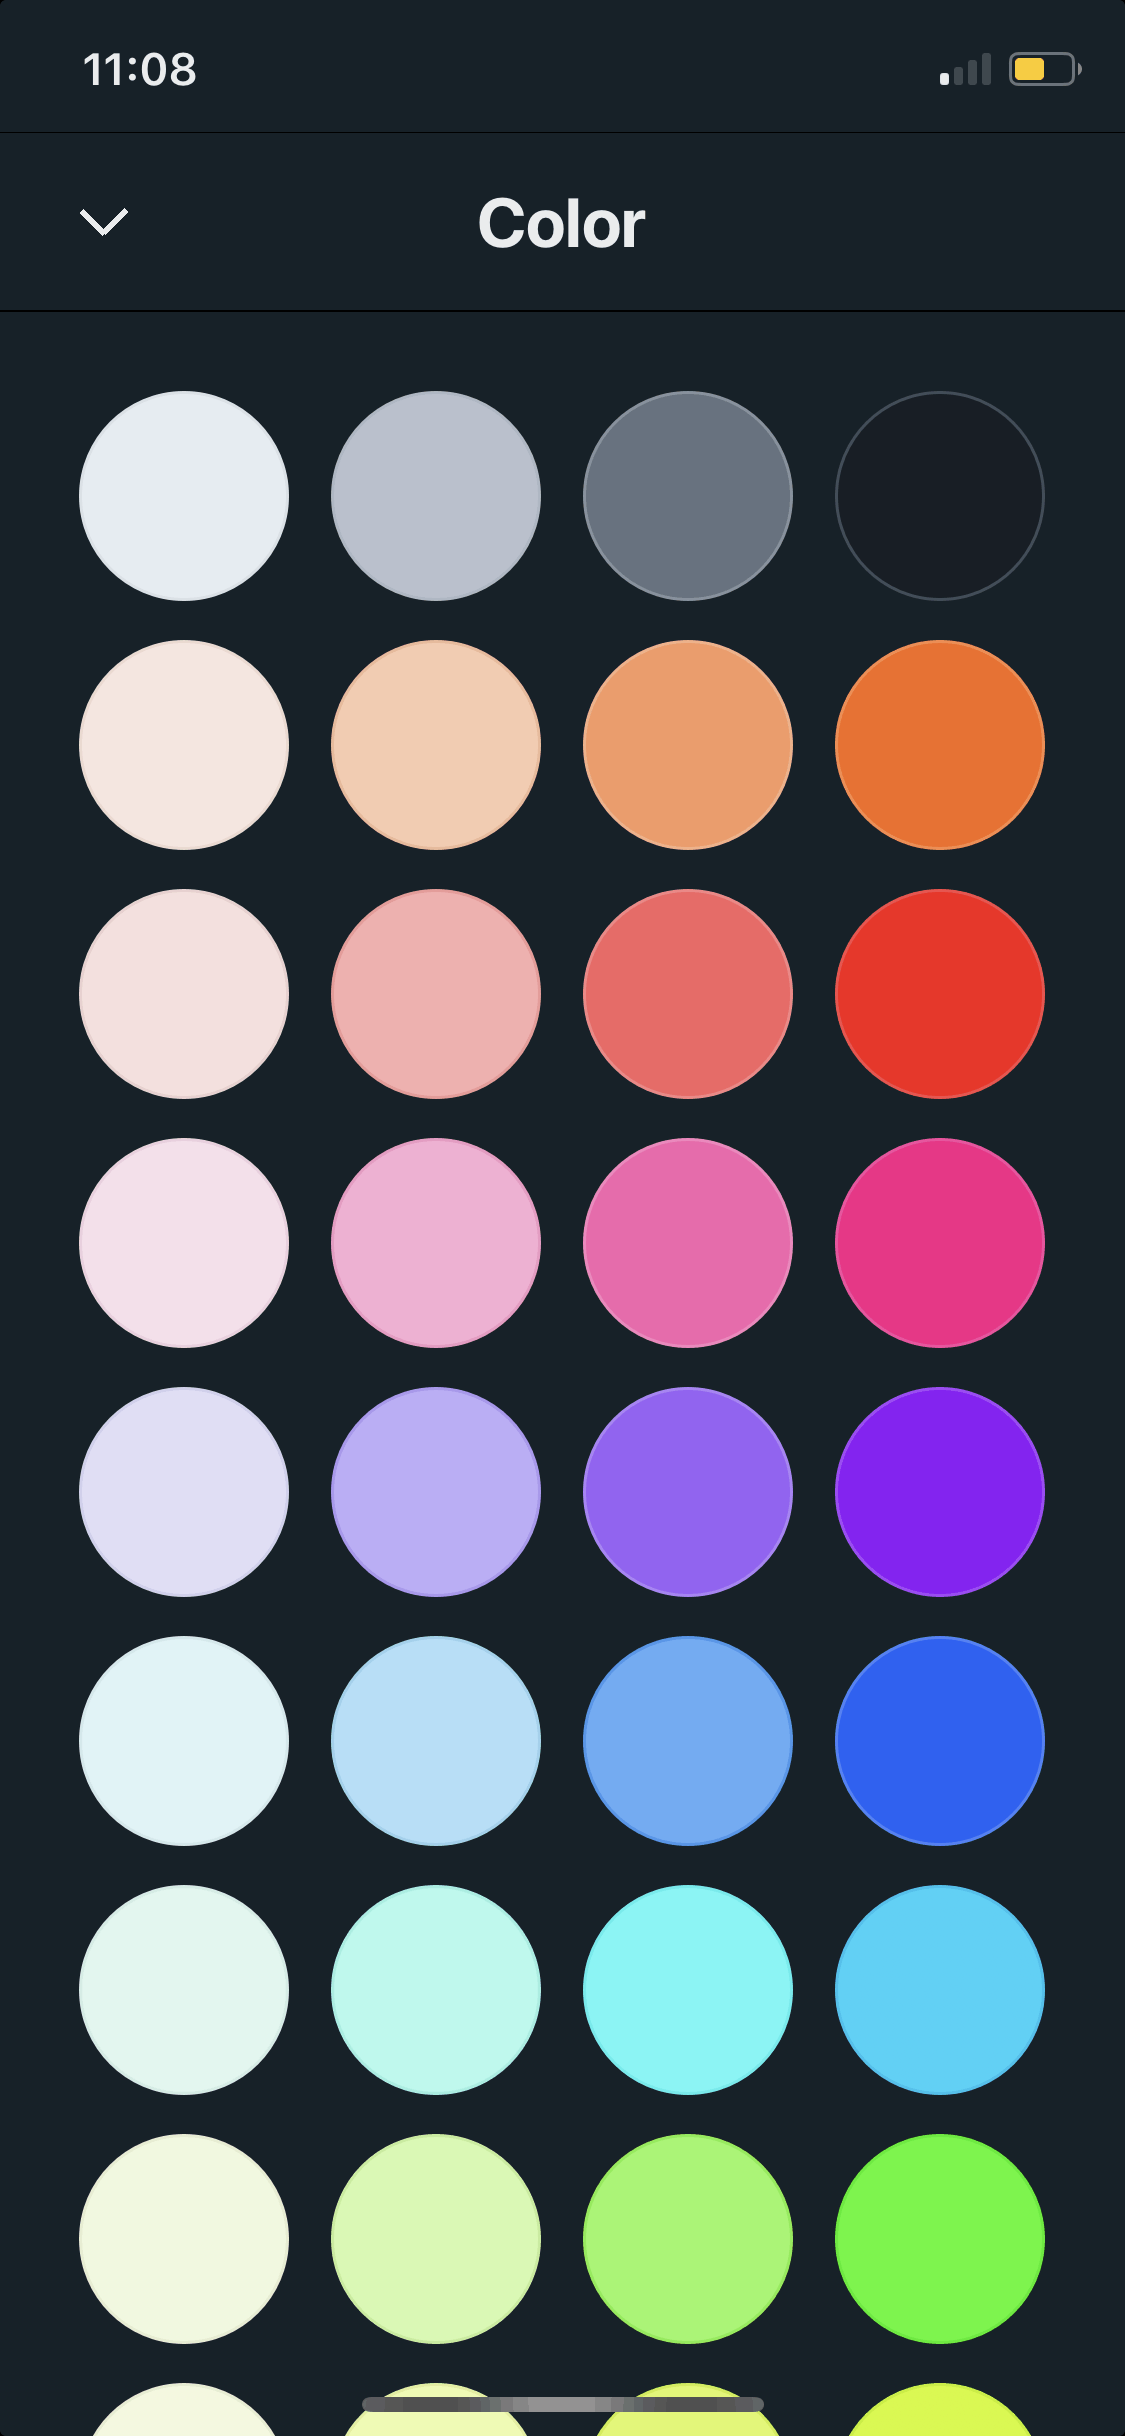 Color Picker on iOS by Vantage